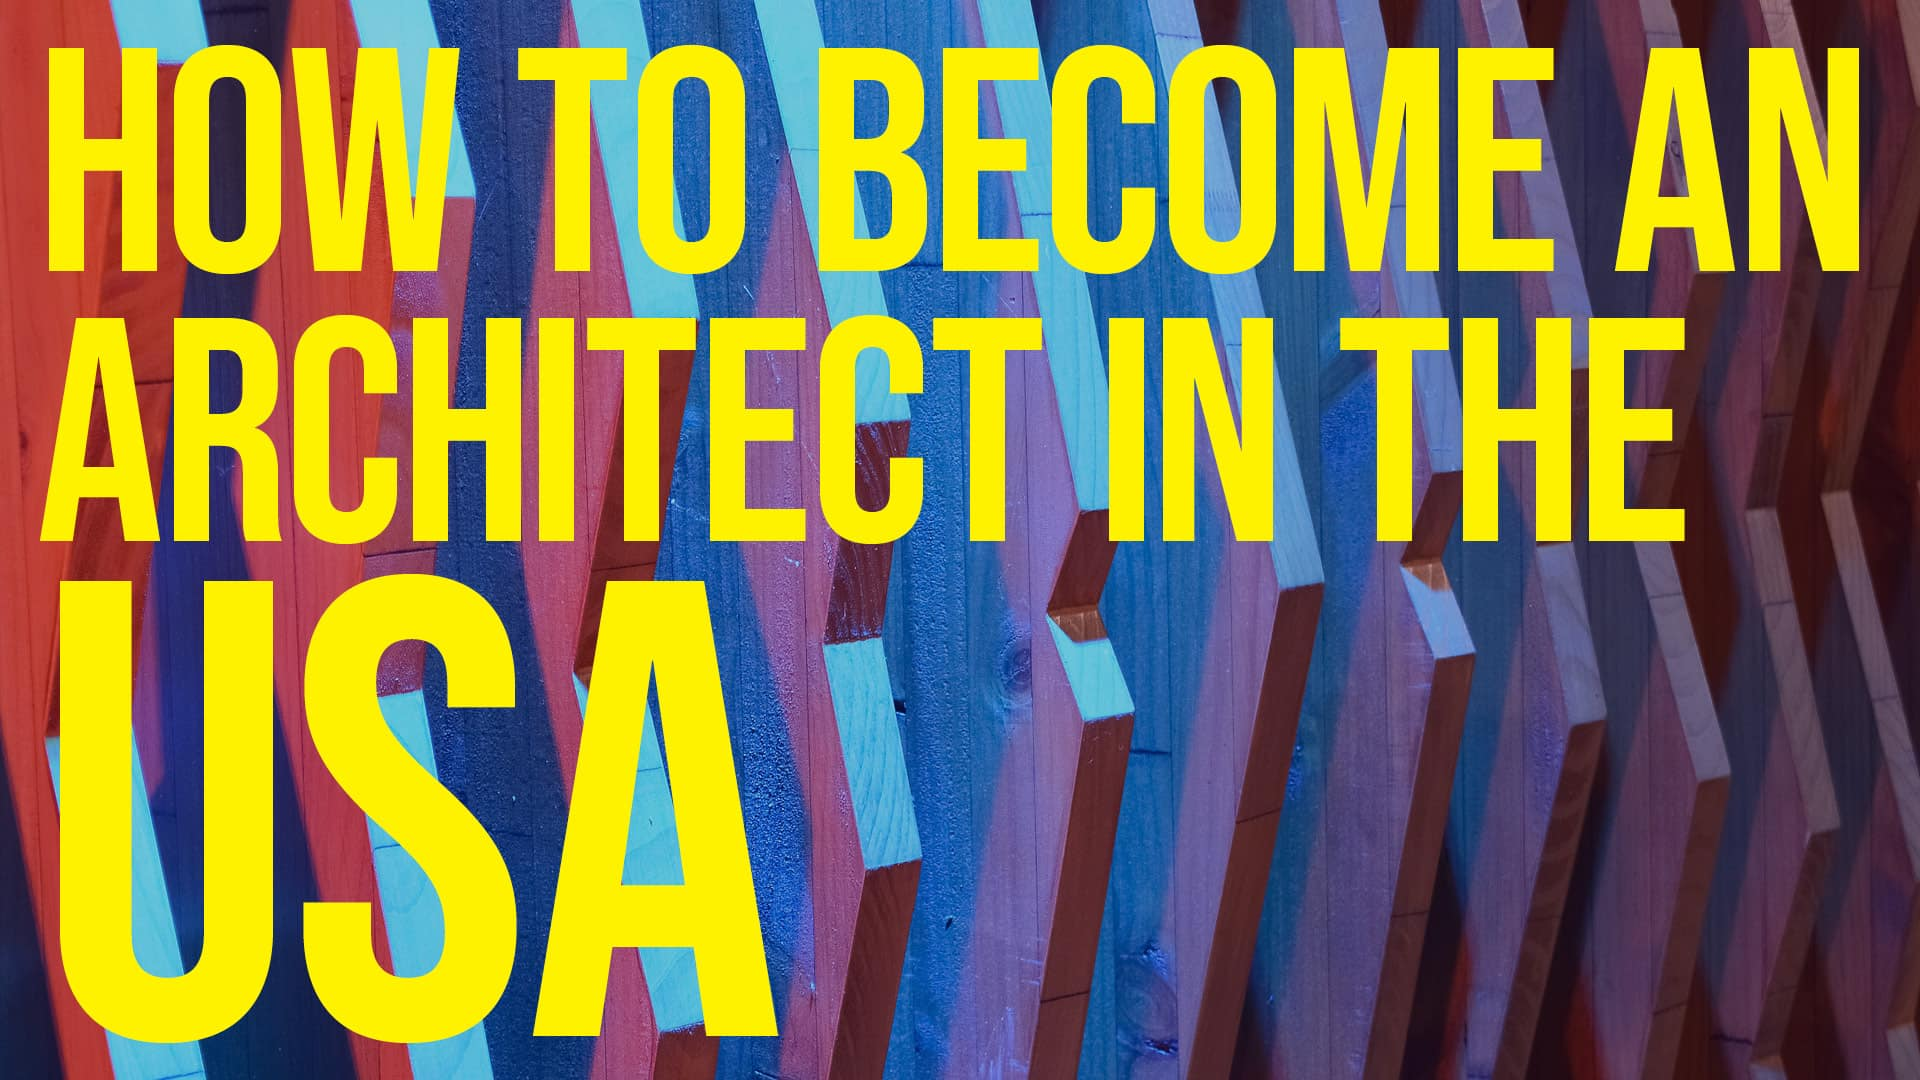 How to become an Architect in the USA